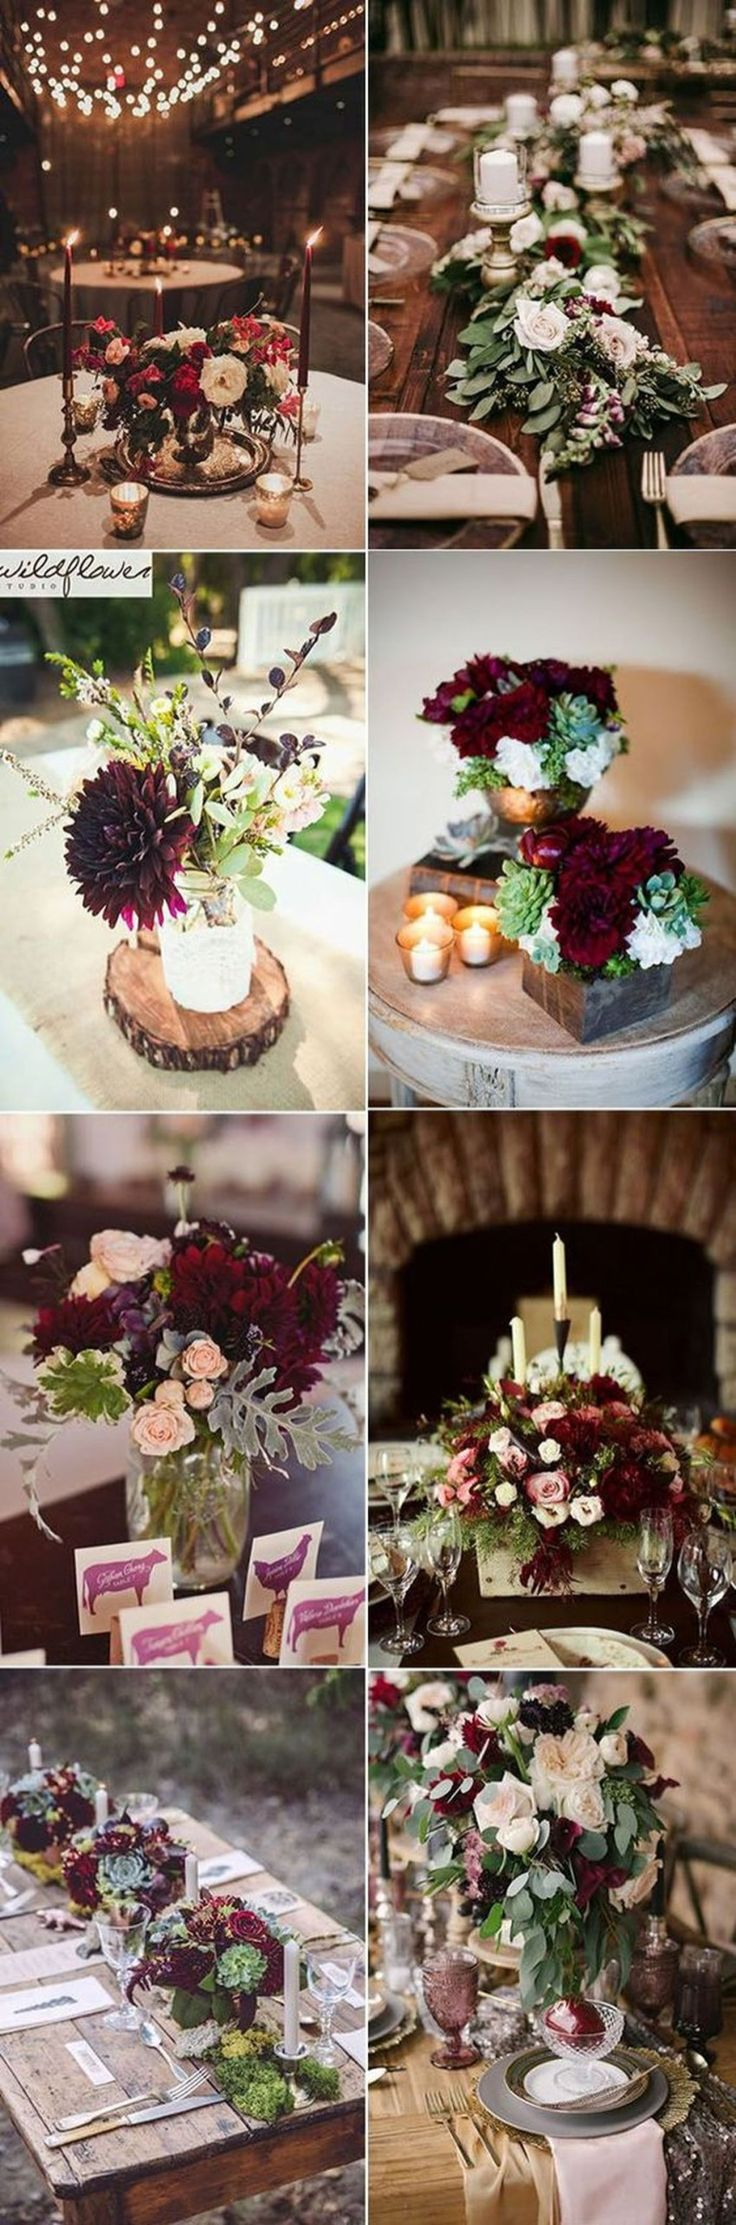 Romantic Floral Wedding Decoration Ideas For Your Special Day 25